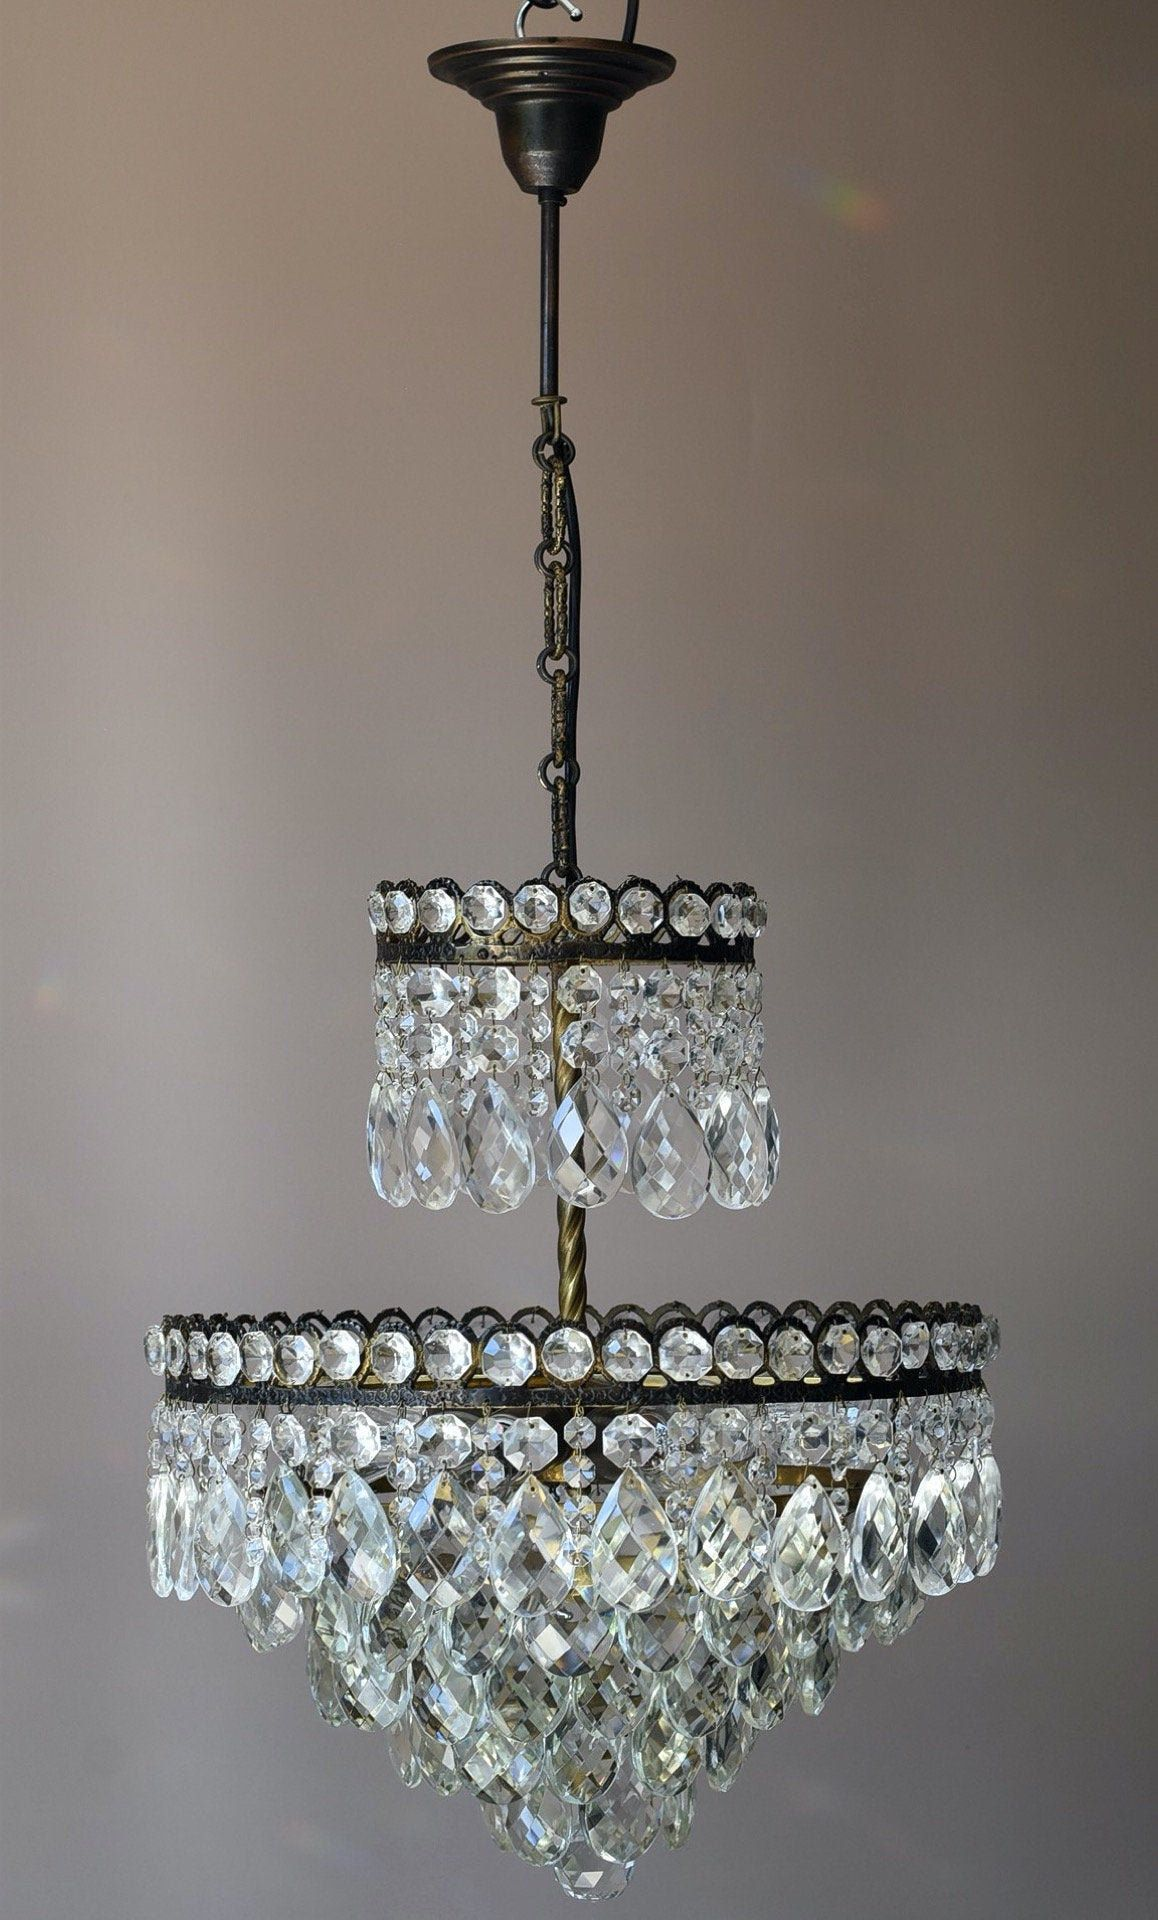 Antique Style Light French Empire Wedding Chandelier Etsy In 2020 Vintage Crystal Chandelier Ceiling Pendant Chandelier